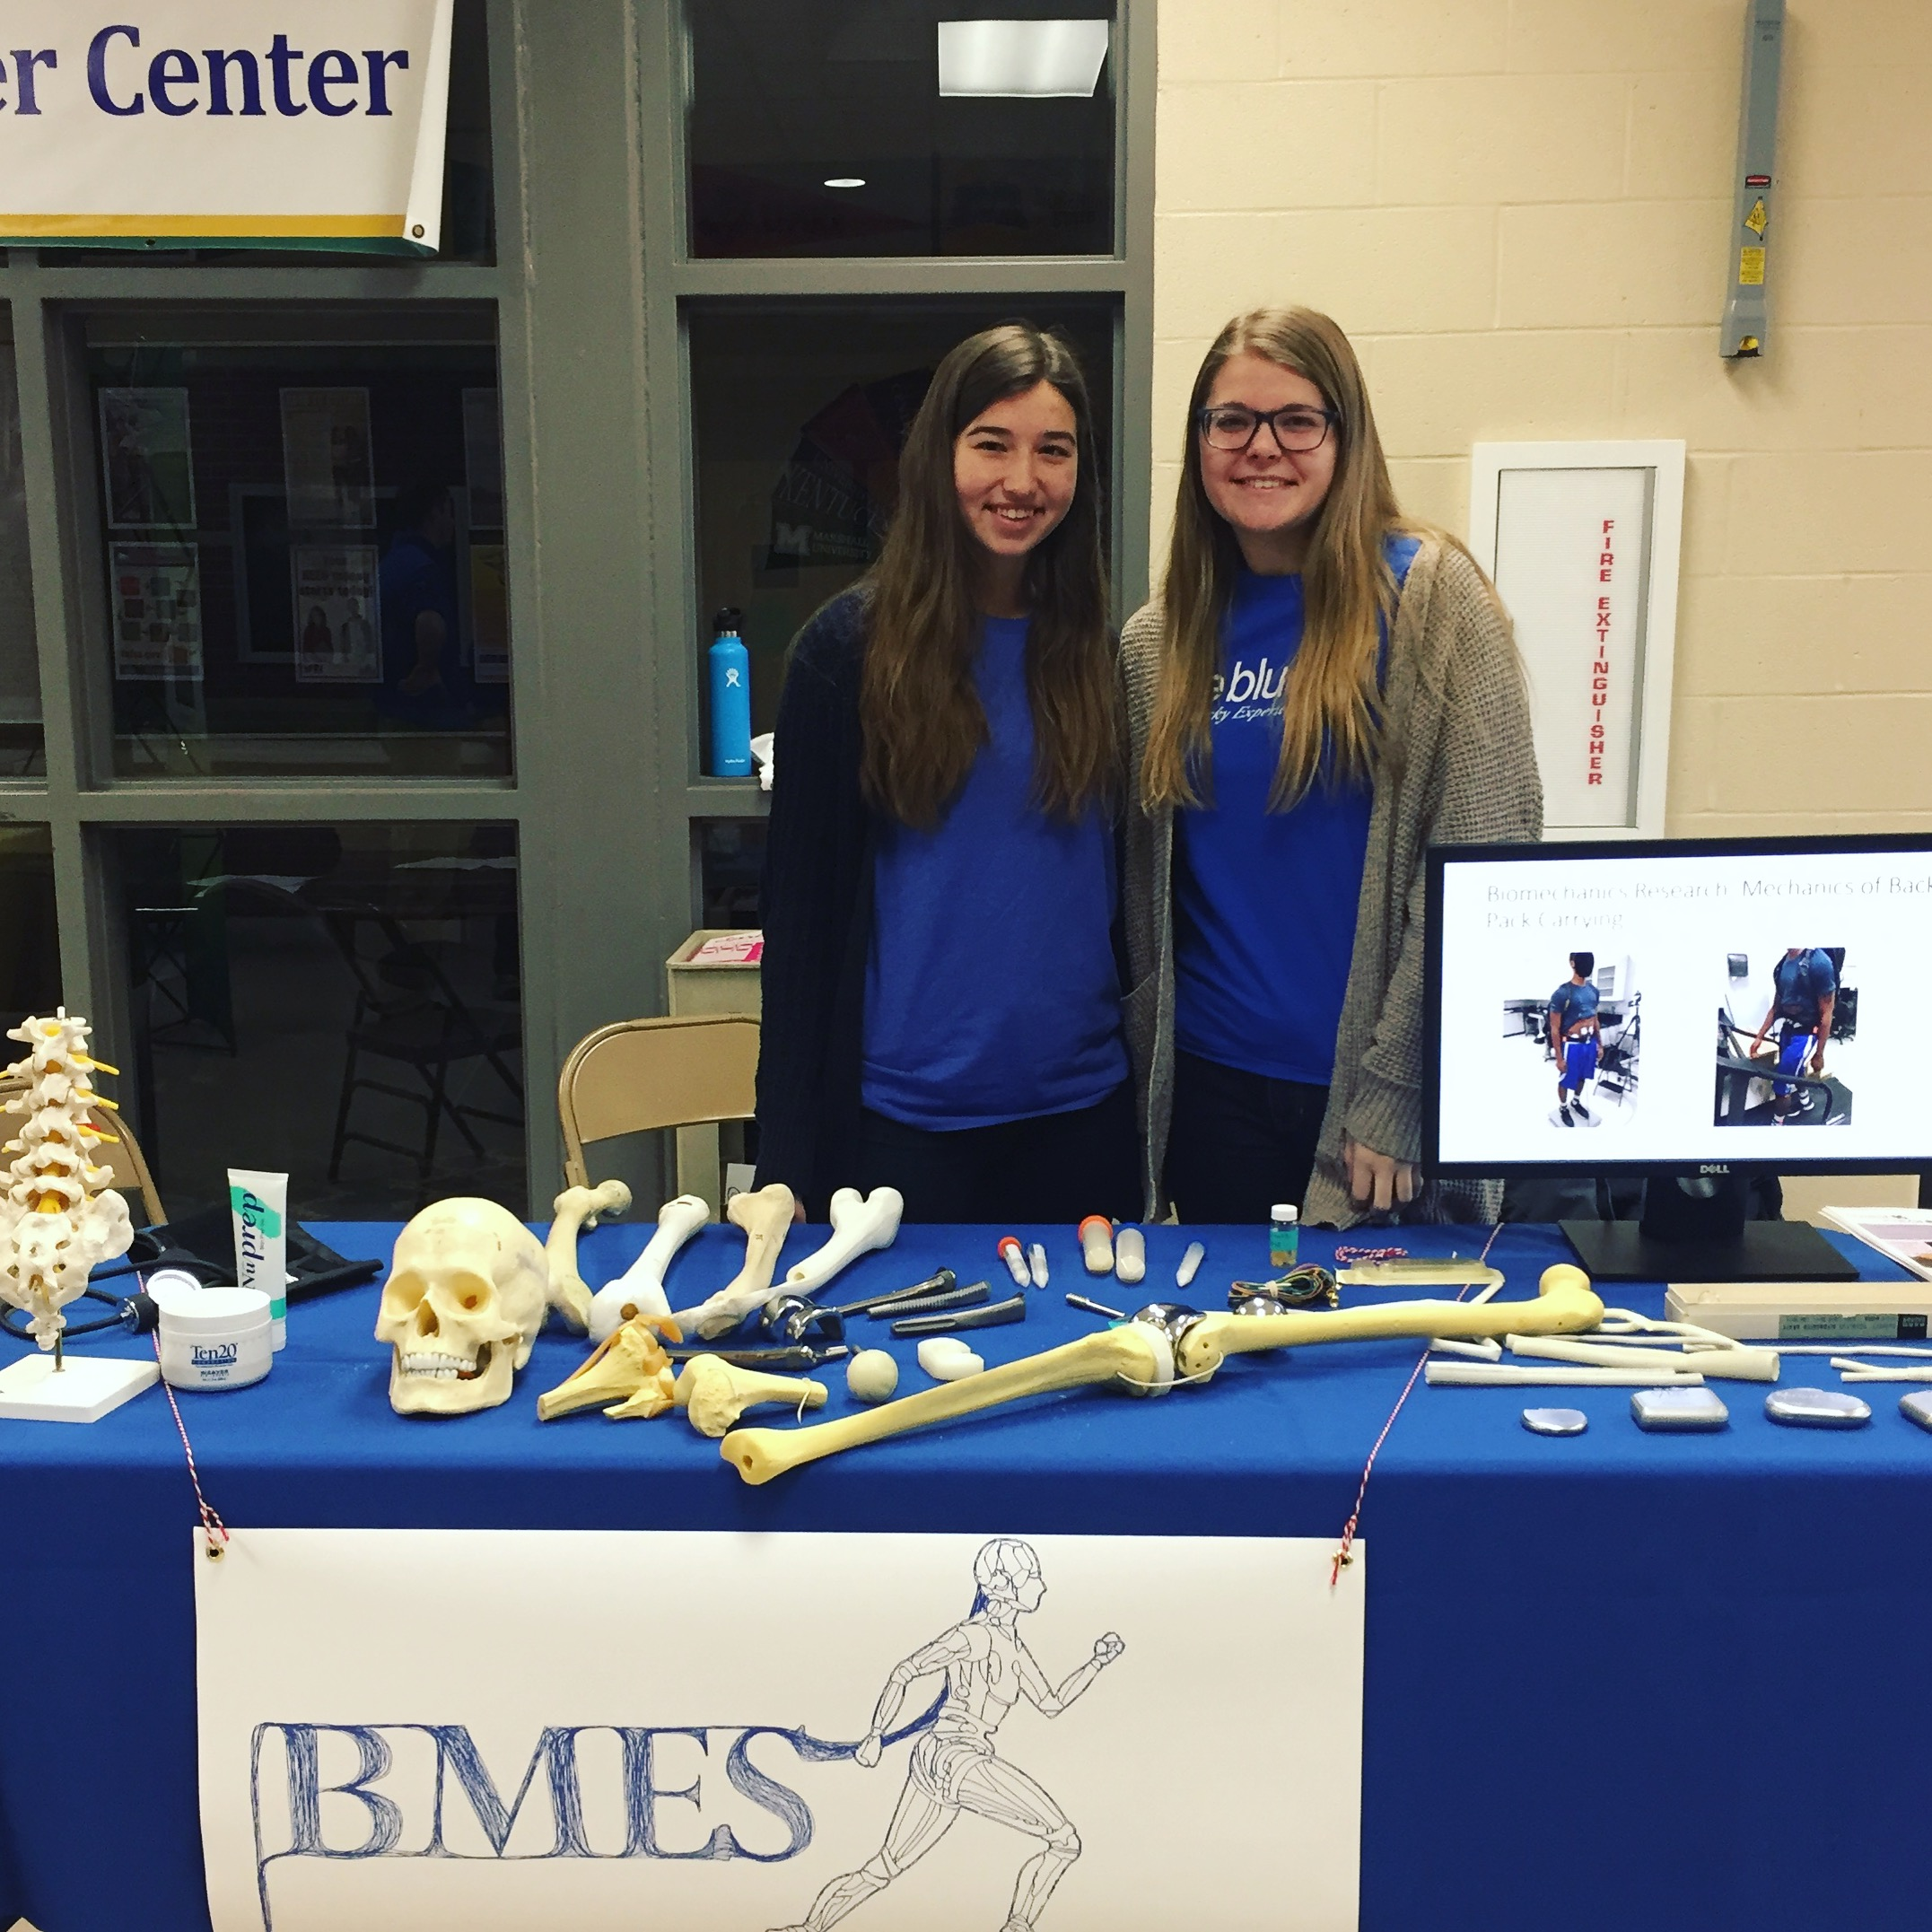 Undergraduate UK BMES members, Brittney Williams (left) and Madison Peppenhorst (right), behind the UK BMES science fair exhibit.